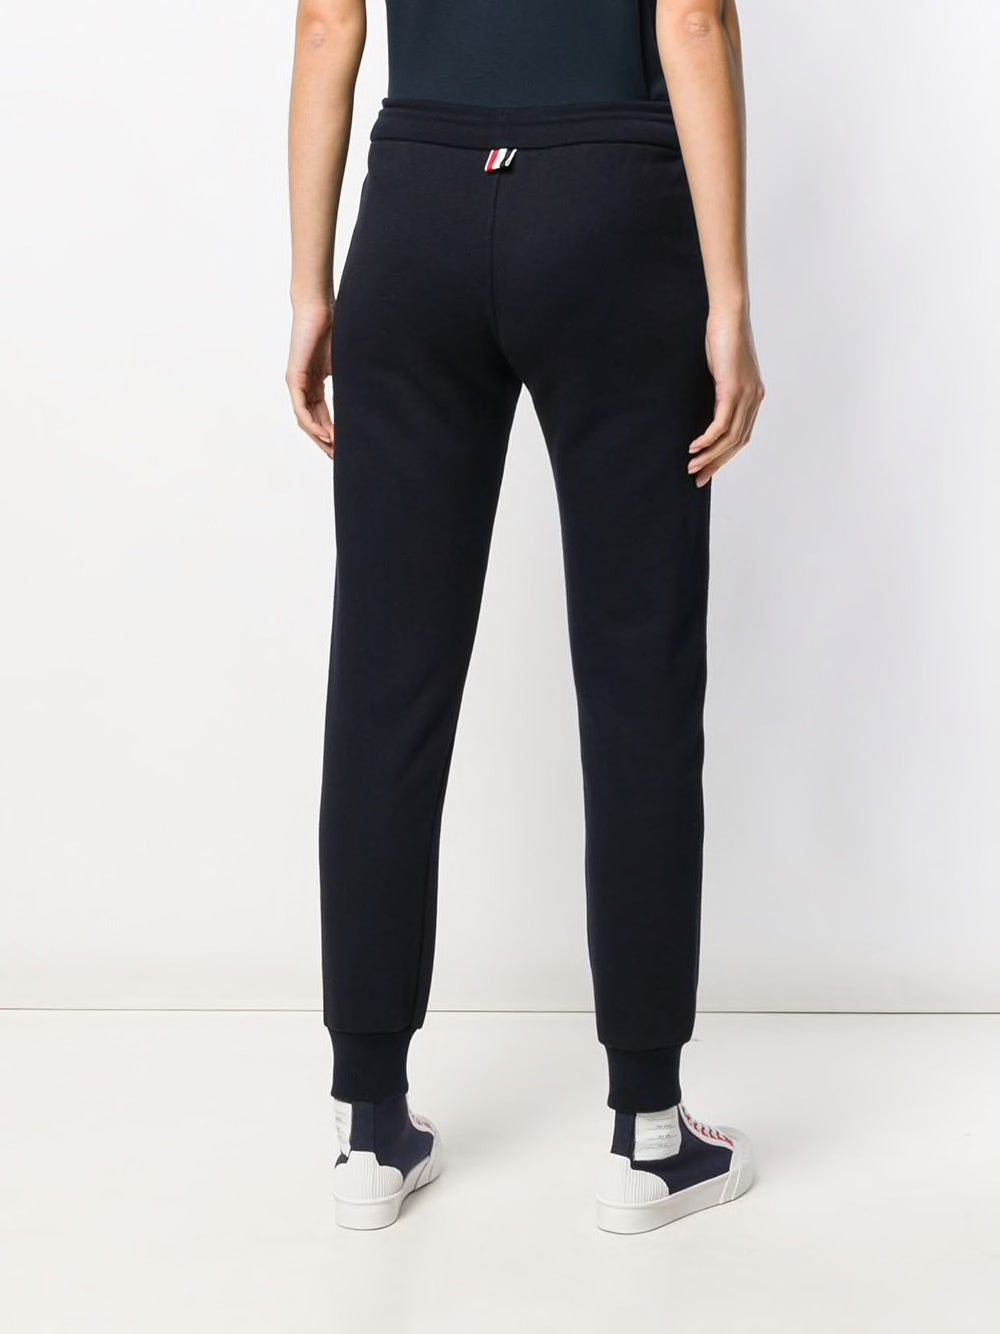 THOM BROWNE WOMEN SWEATPANTS IN CLASSIC LOOPBACK WITH RWB STRIPE